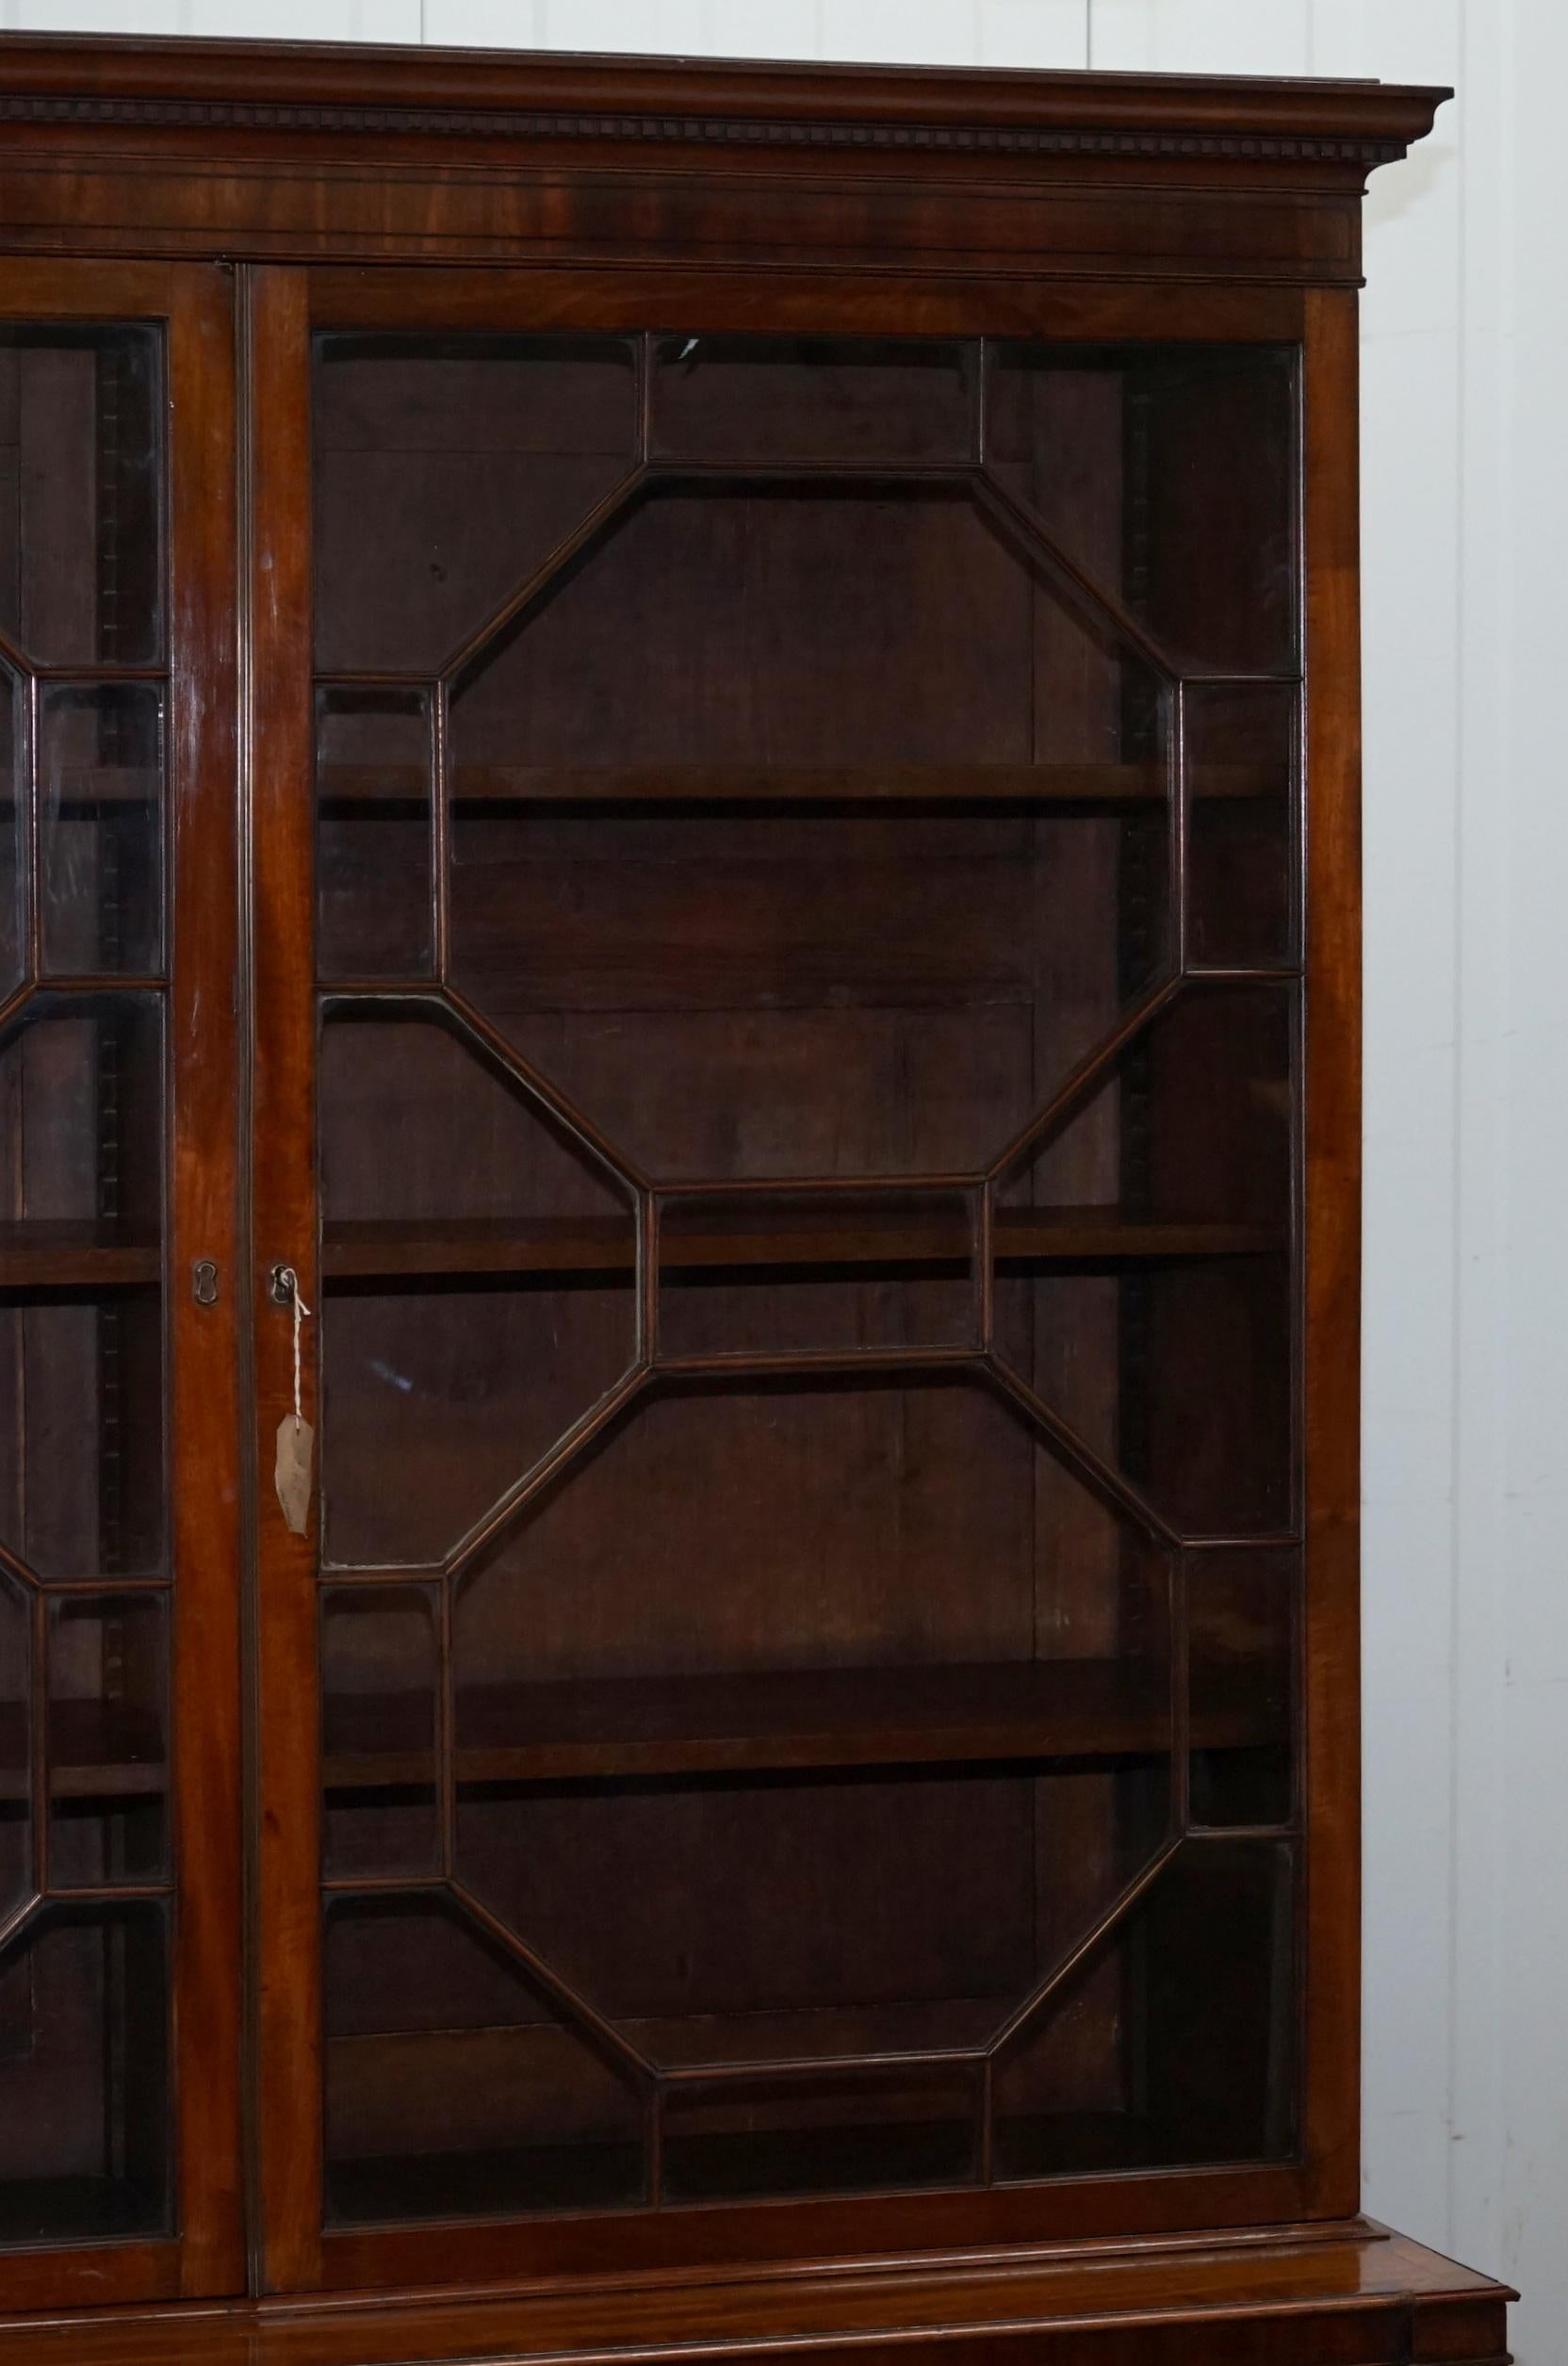 Very Rare Gillows Astral Glazed Mahogany Bookcase Cabinet Original Paper Labels For At 1stdibs